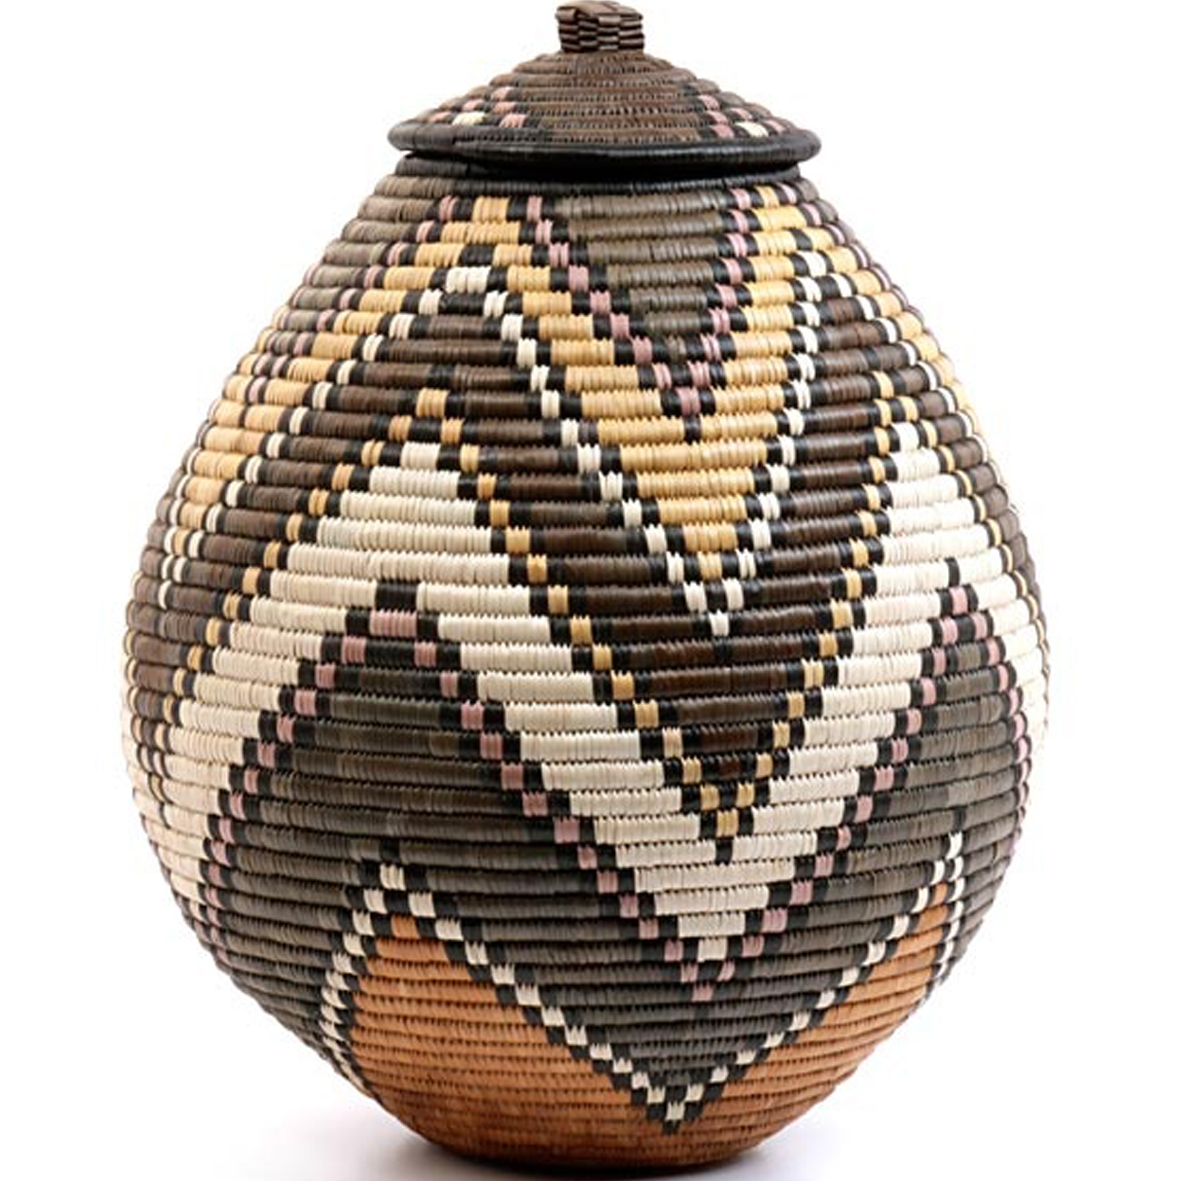 Basket Weaving Origin : Iheartprintsandpatterns african basket weaving